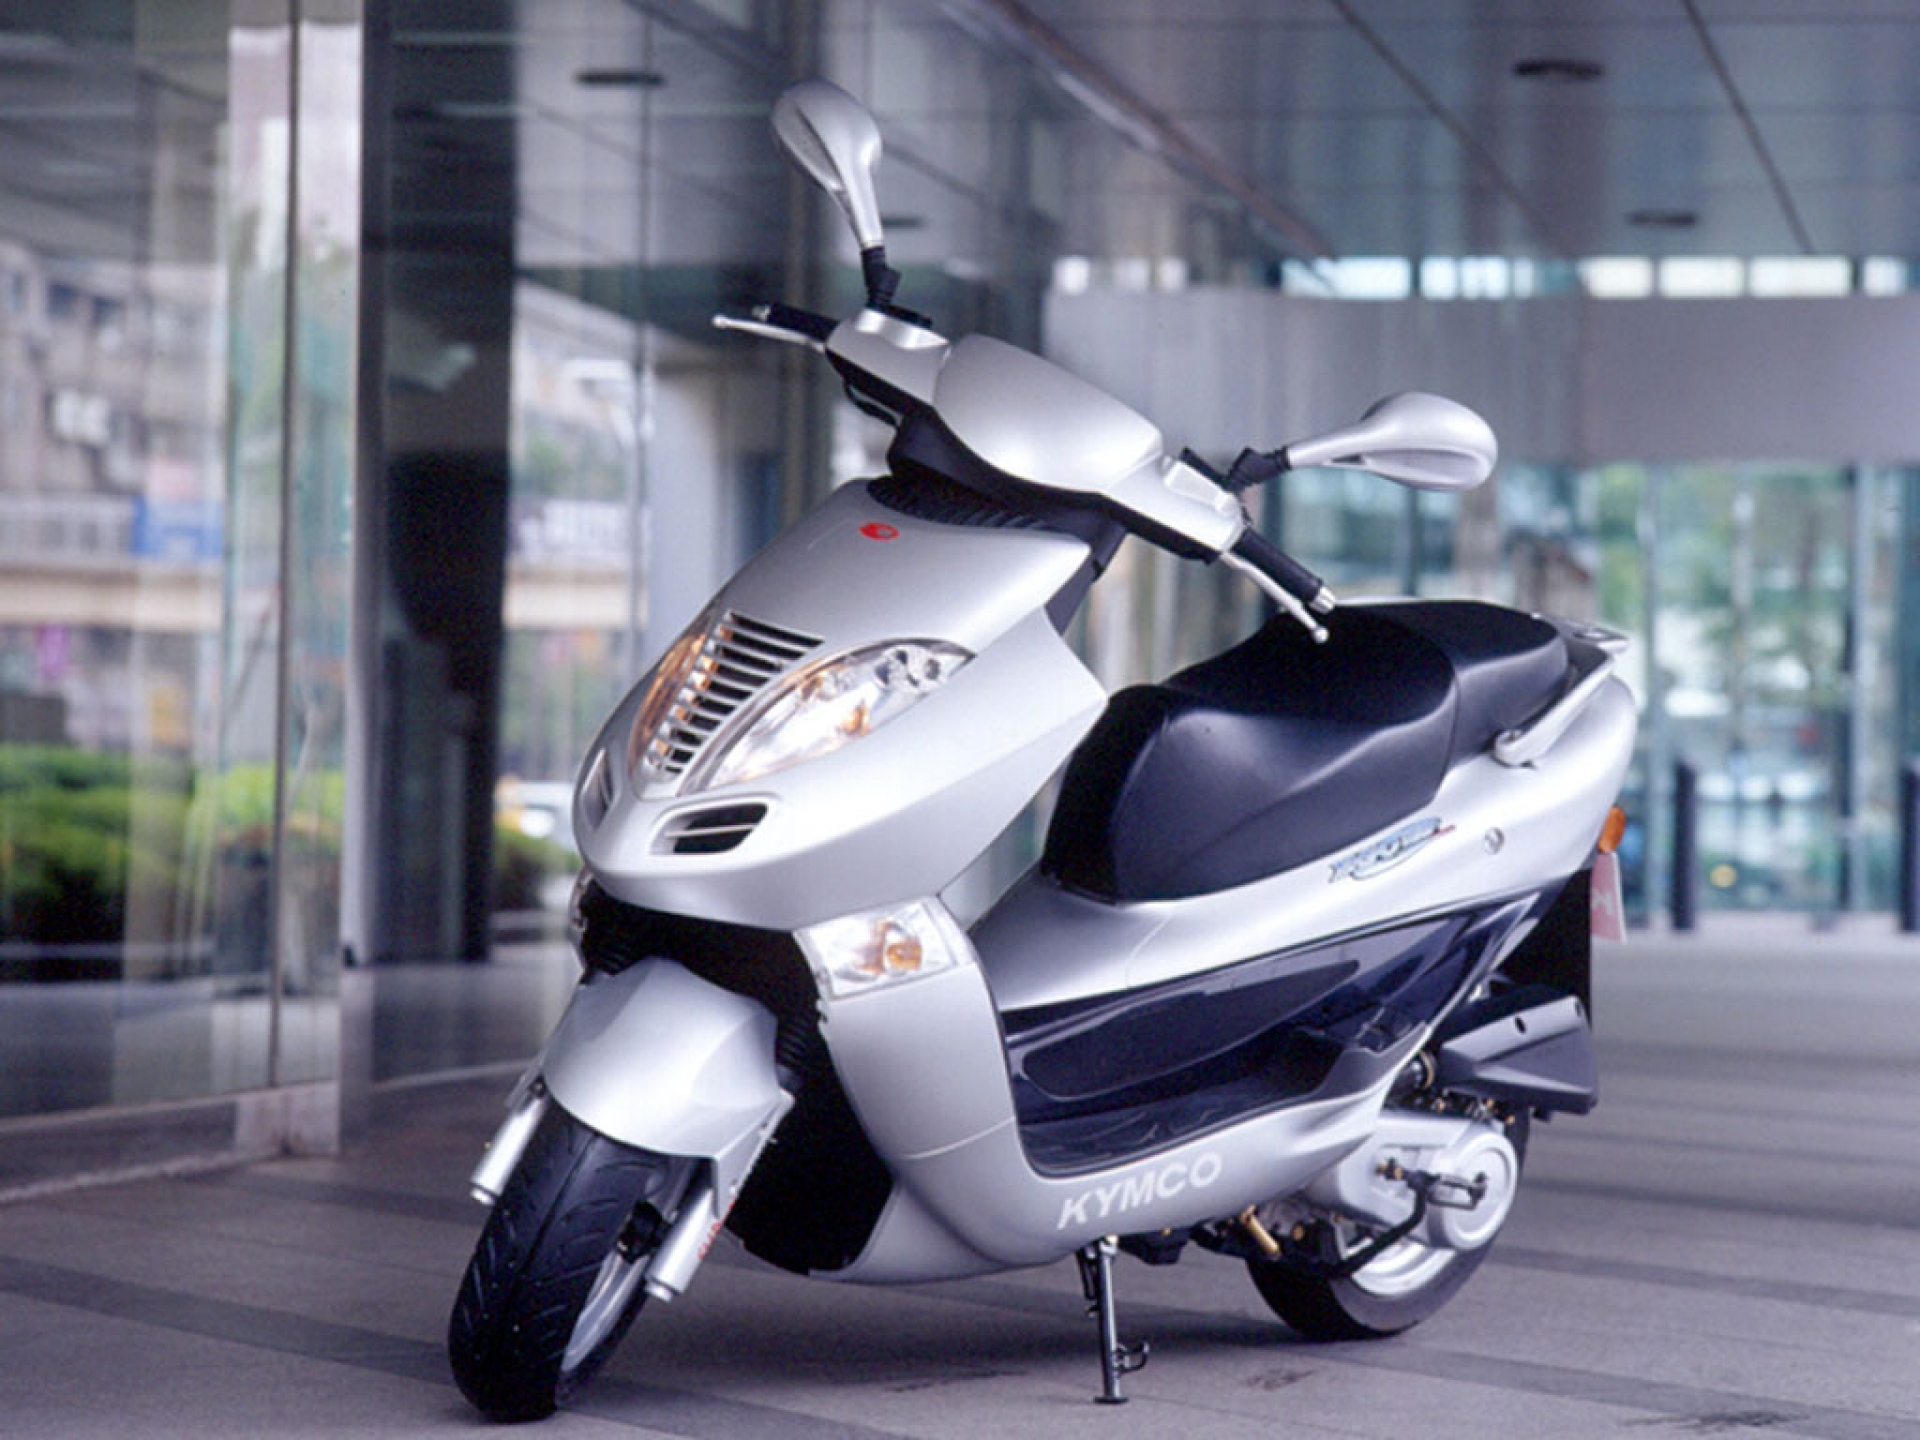 2006 Kymco Bet and Win #5